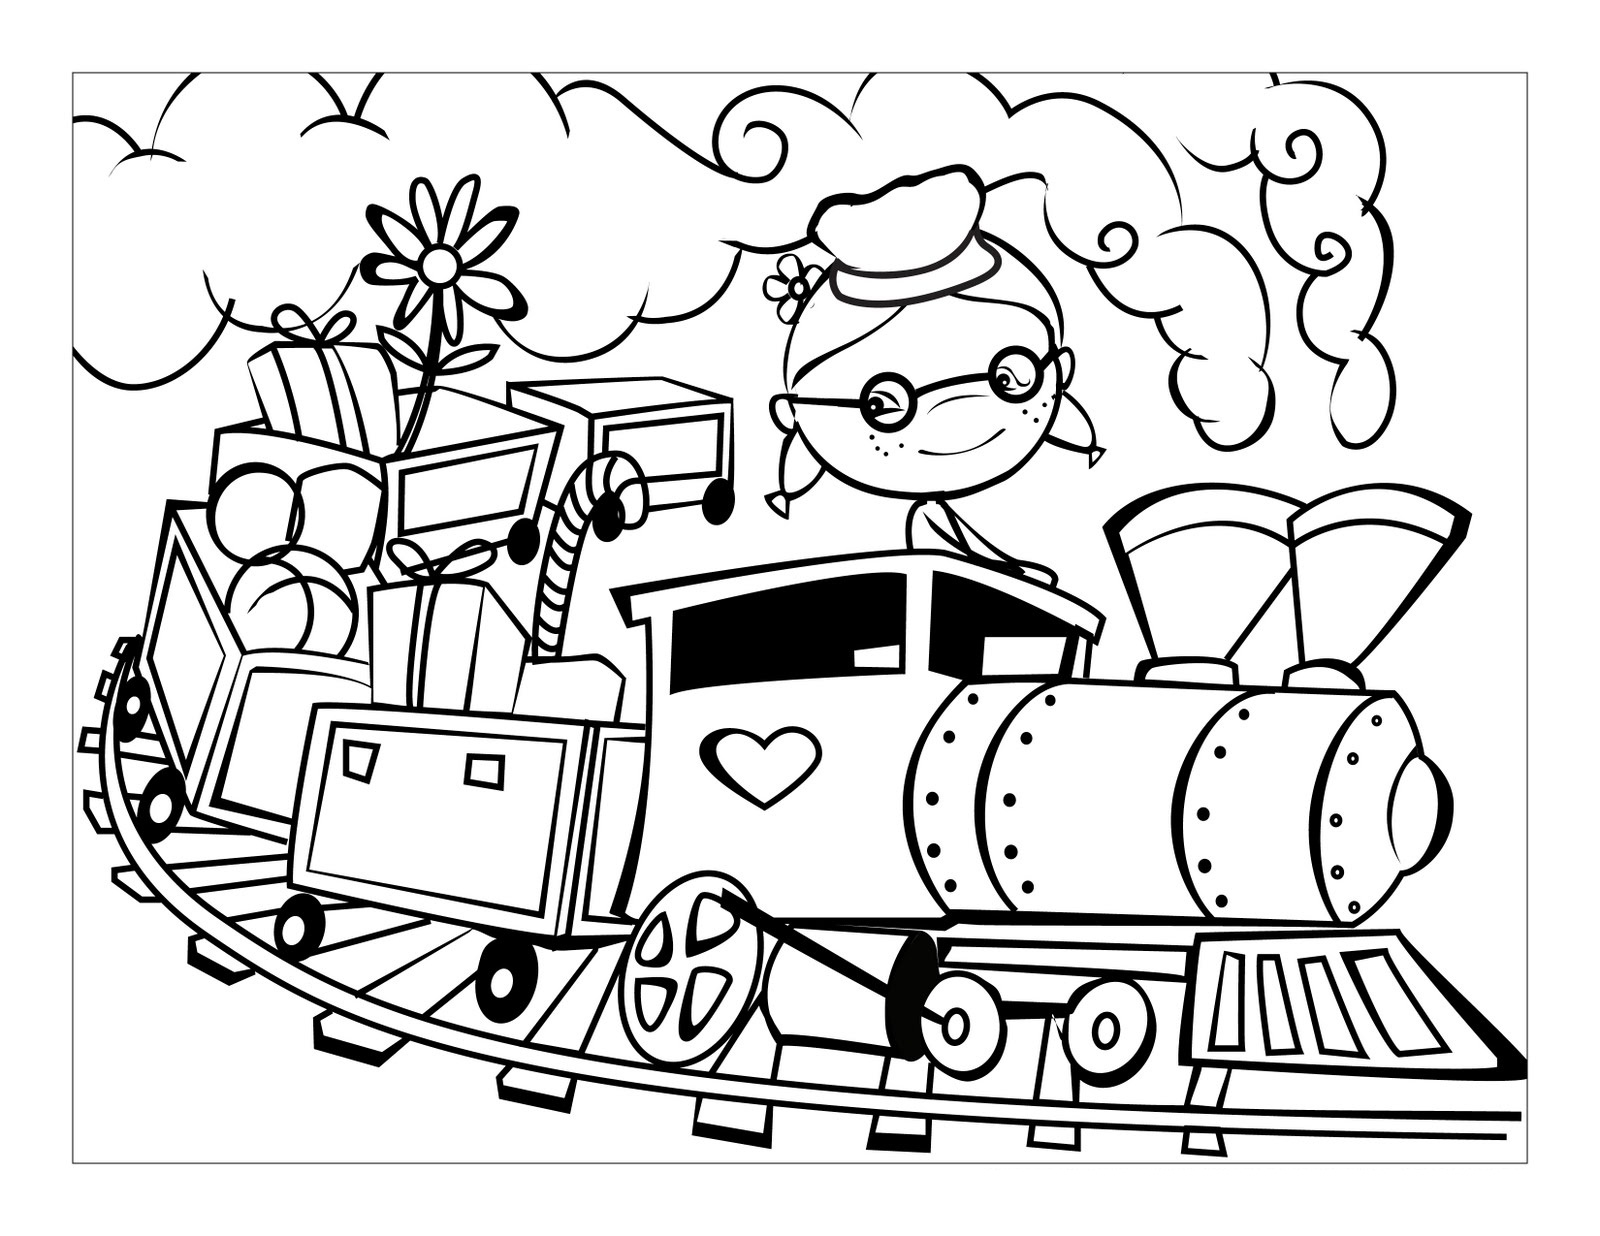 printable coloring pages of trains - photo#19